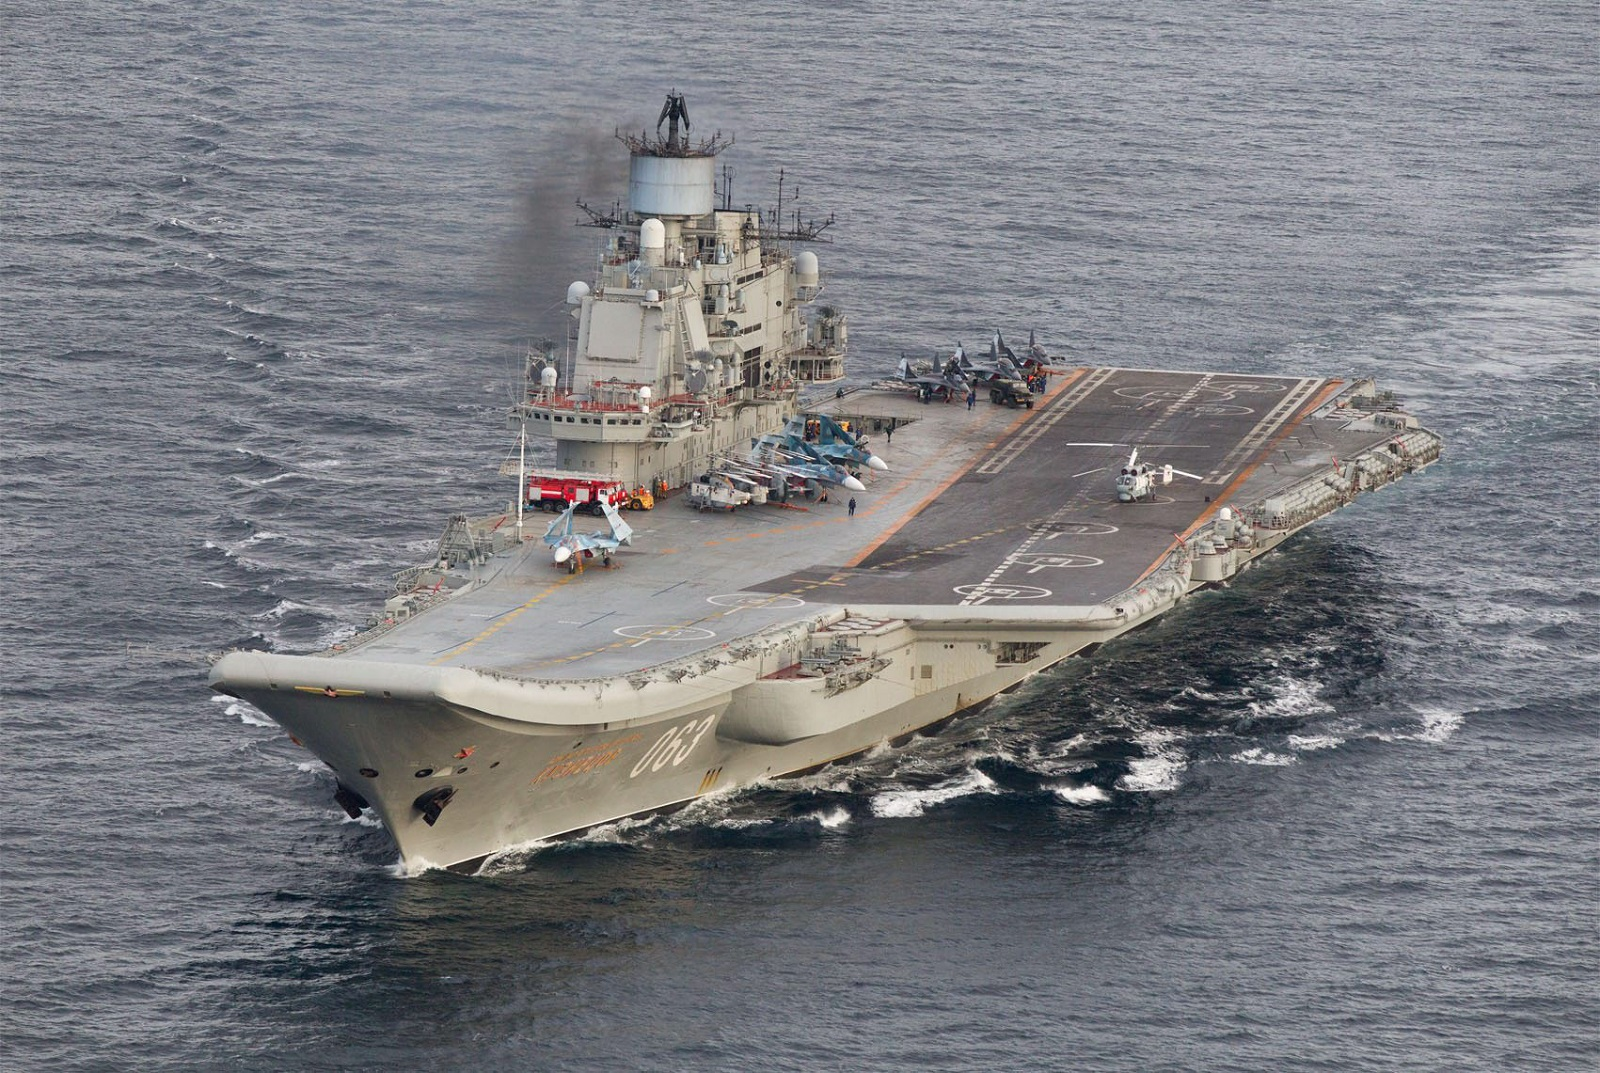 Russia's Only Aircraft Carrier Needs To Head to the Scraper: Experts